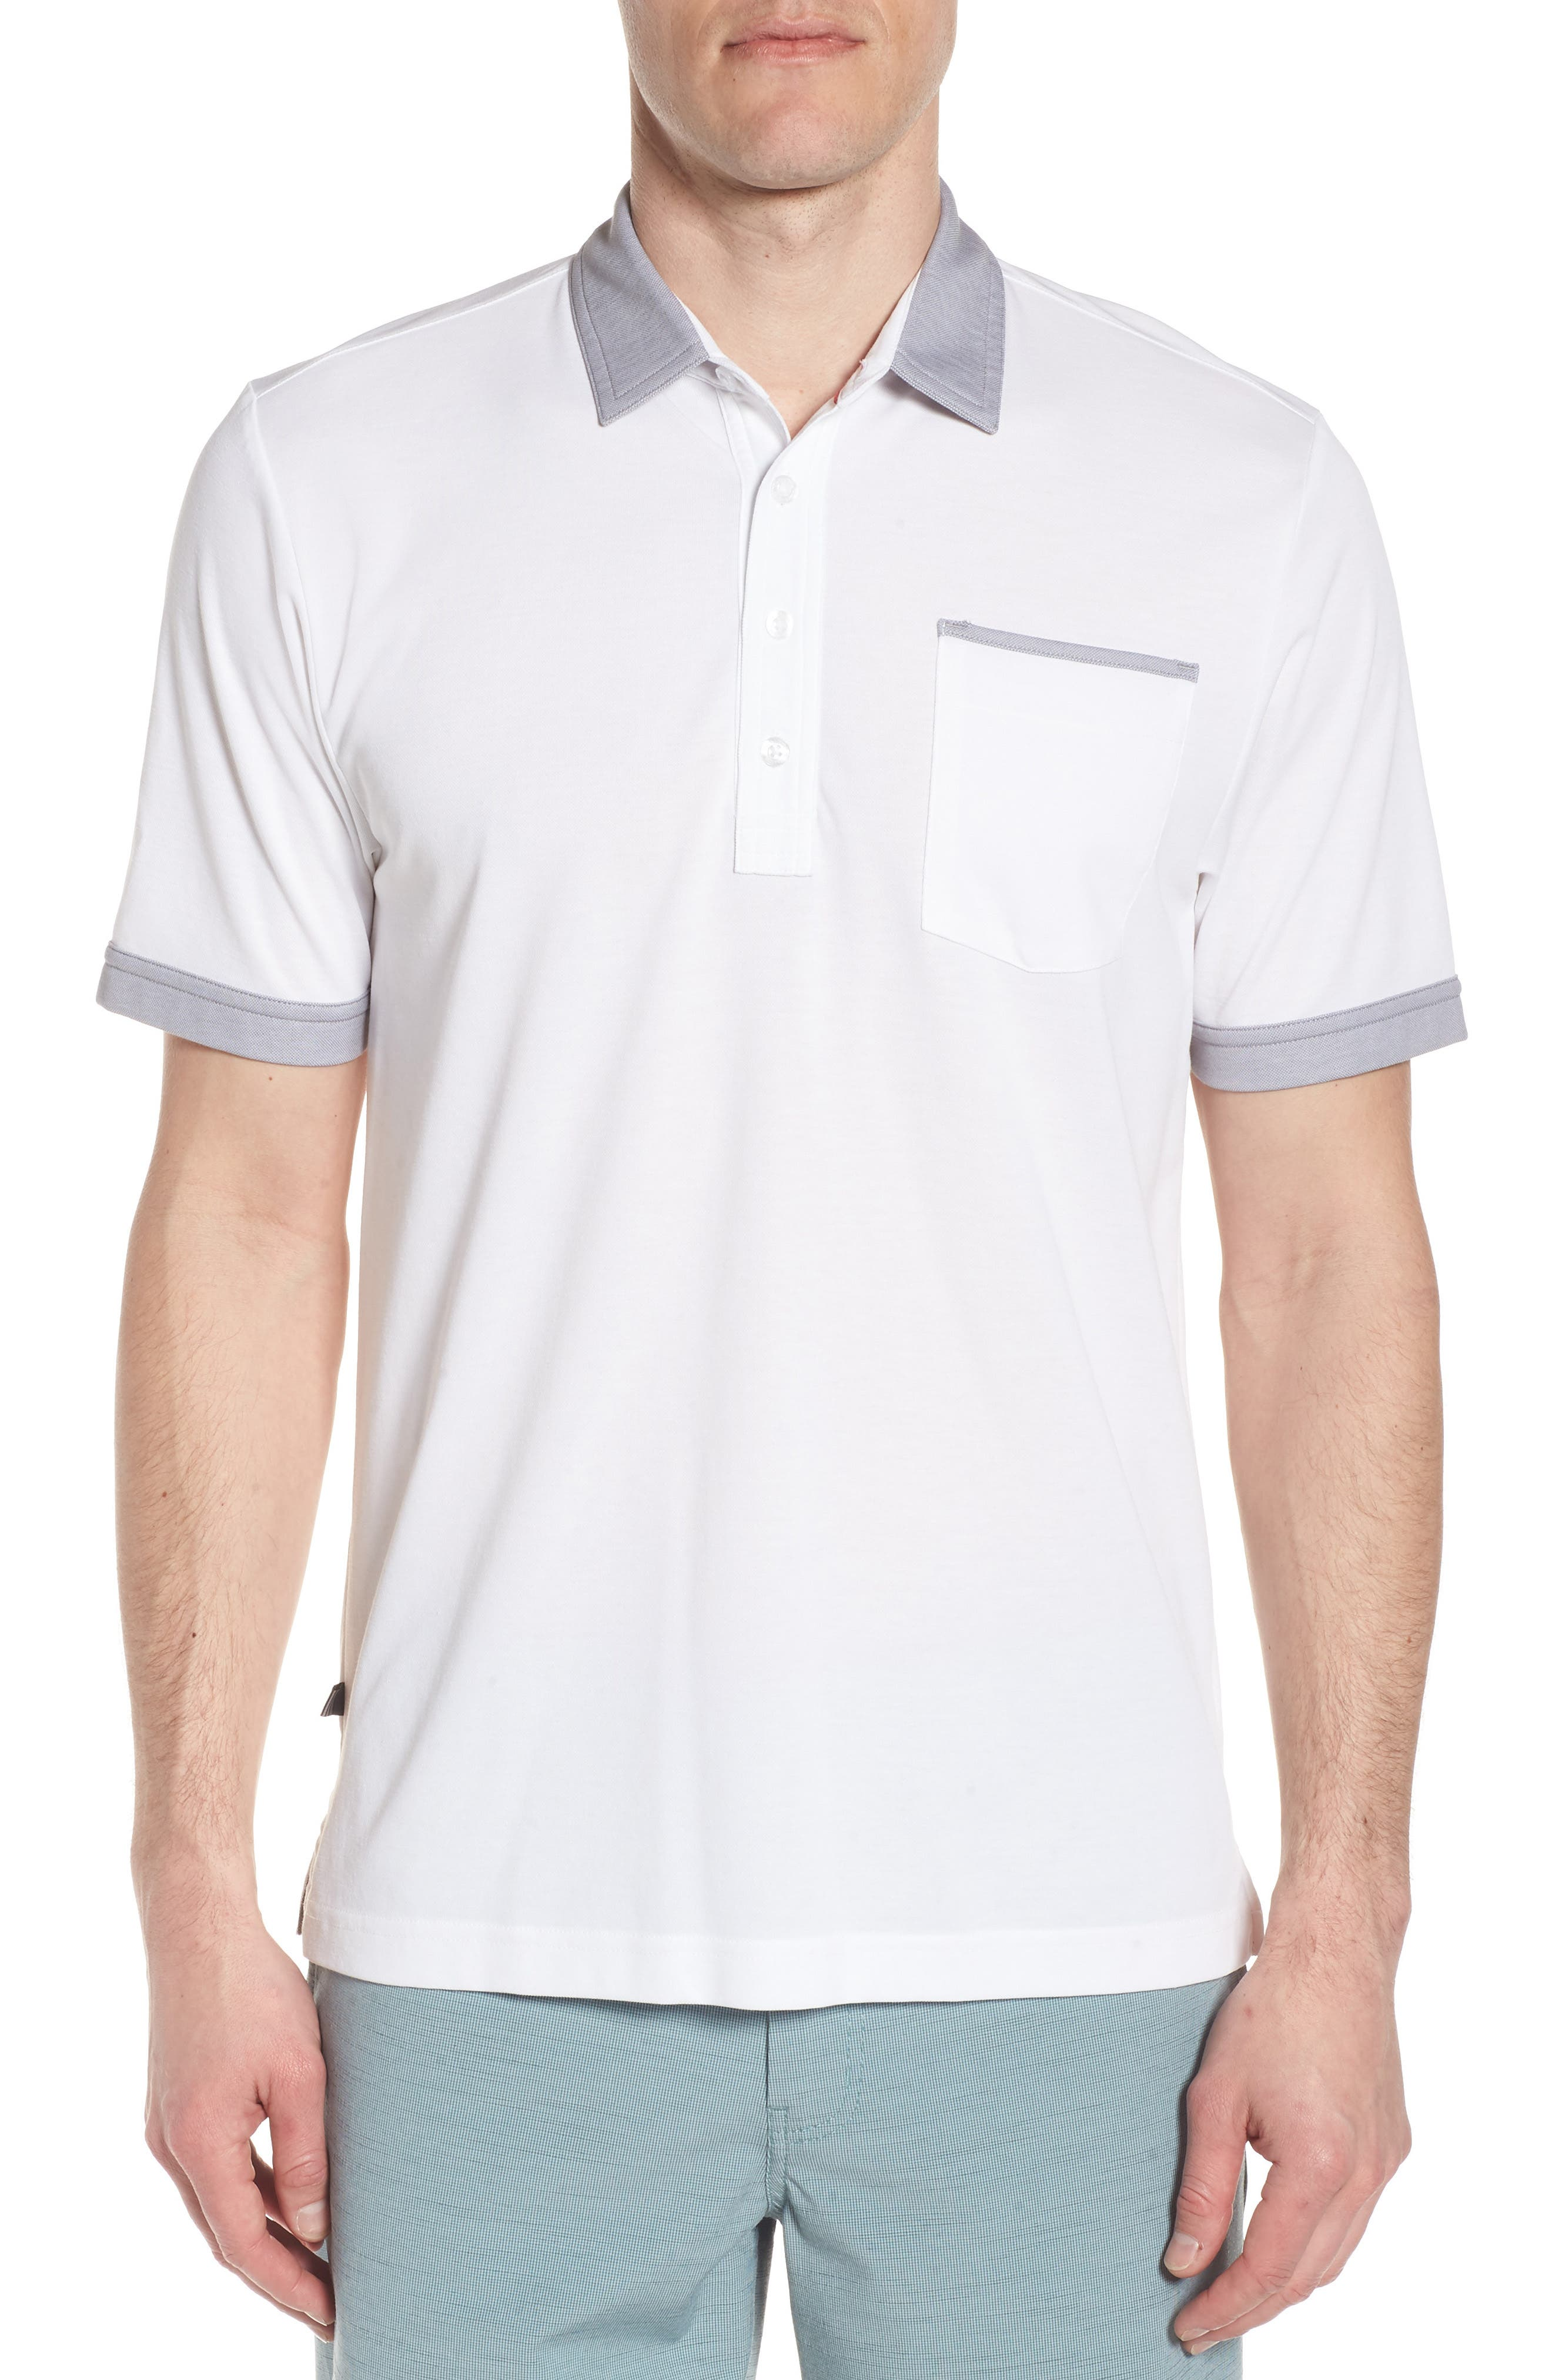 K-Lew Piqué Polo,                         Main,                         color, White